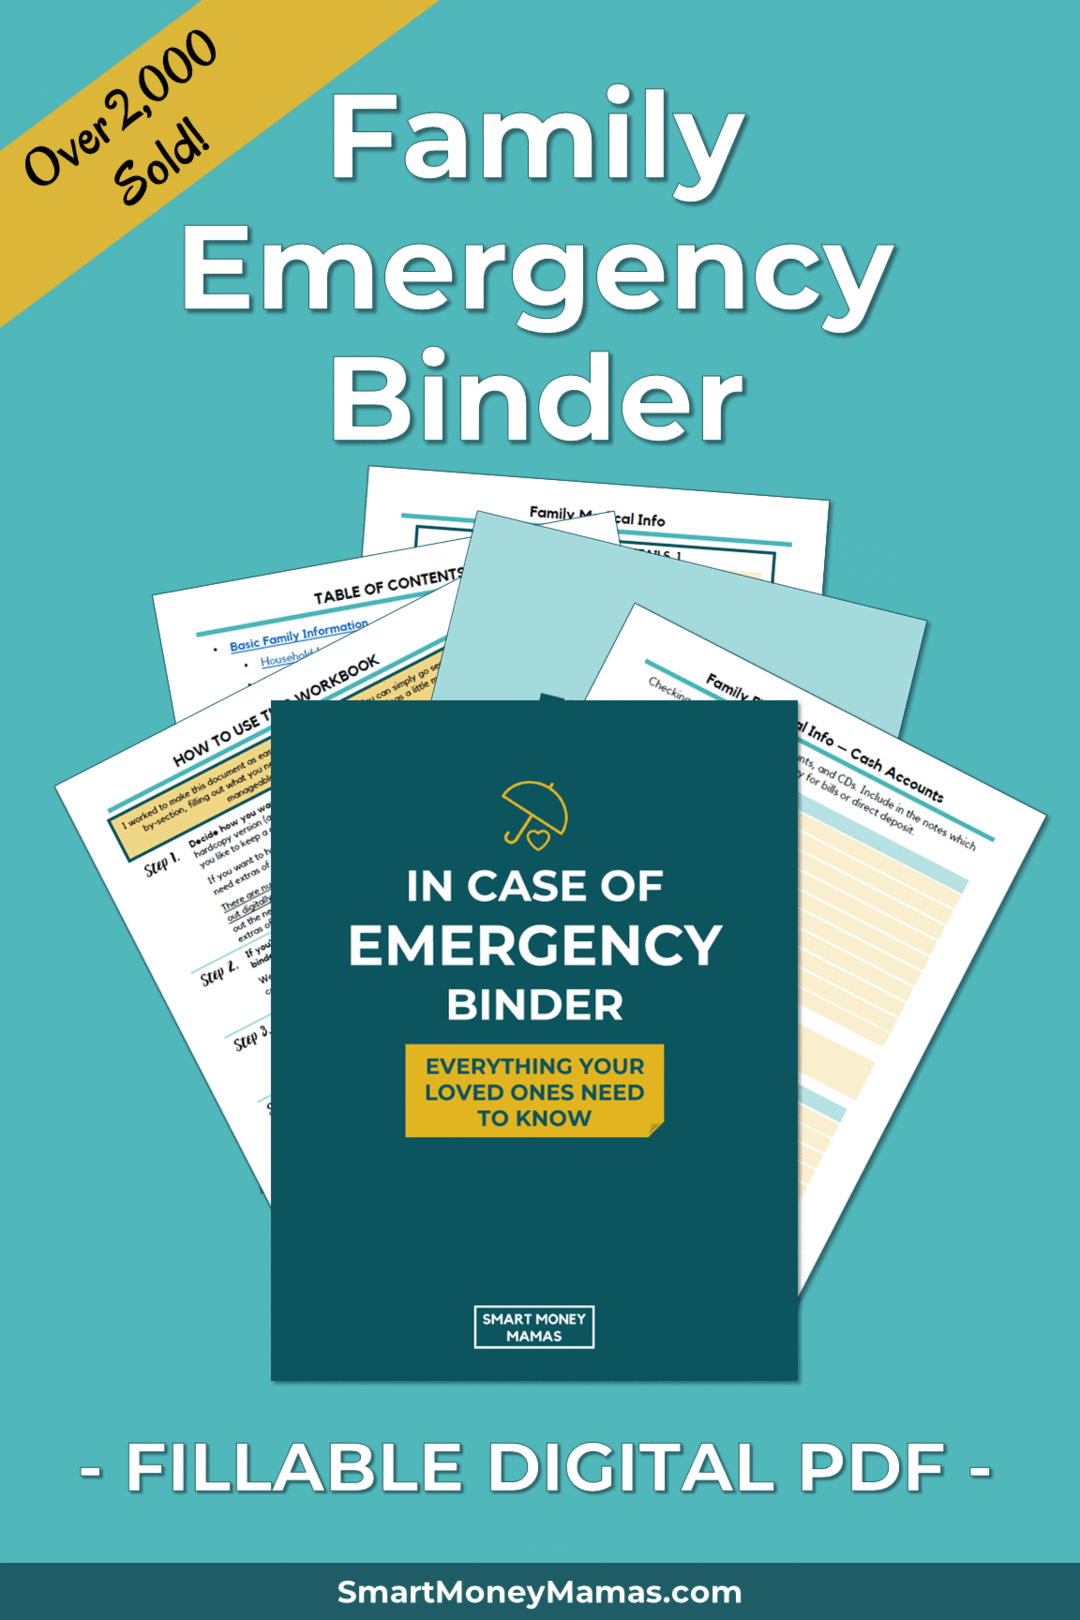 Family Emergency Binder